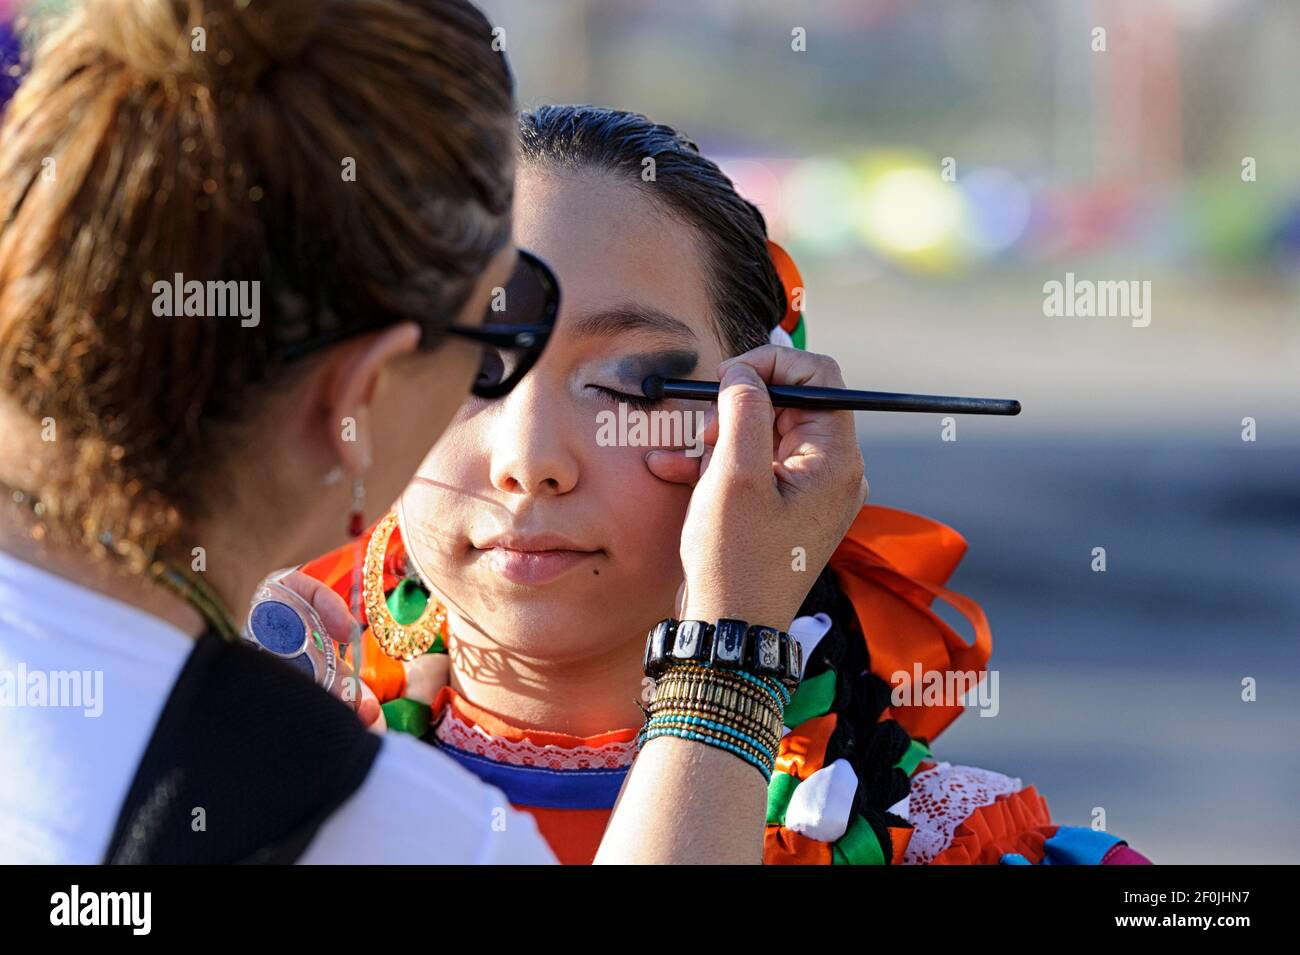 a-young-latina-participant-in-the-mexican-section-getting-ready-for-the-calgary-stampede-parade-to-start-2F0JHN7.jpg